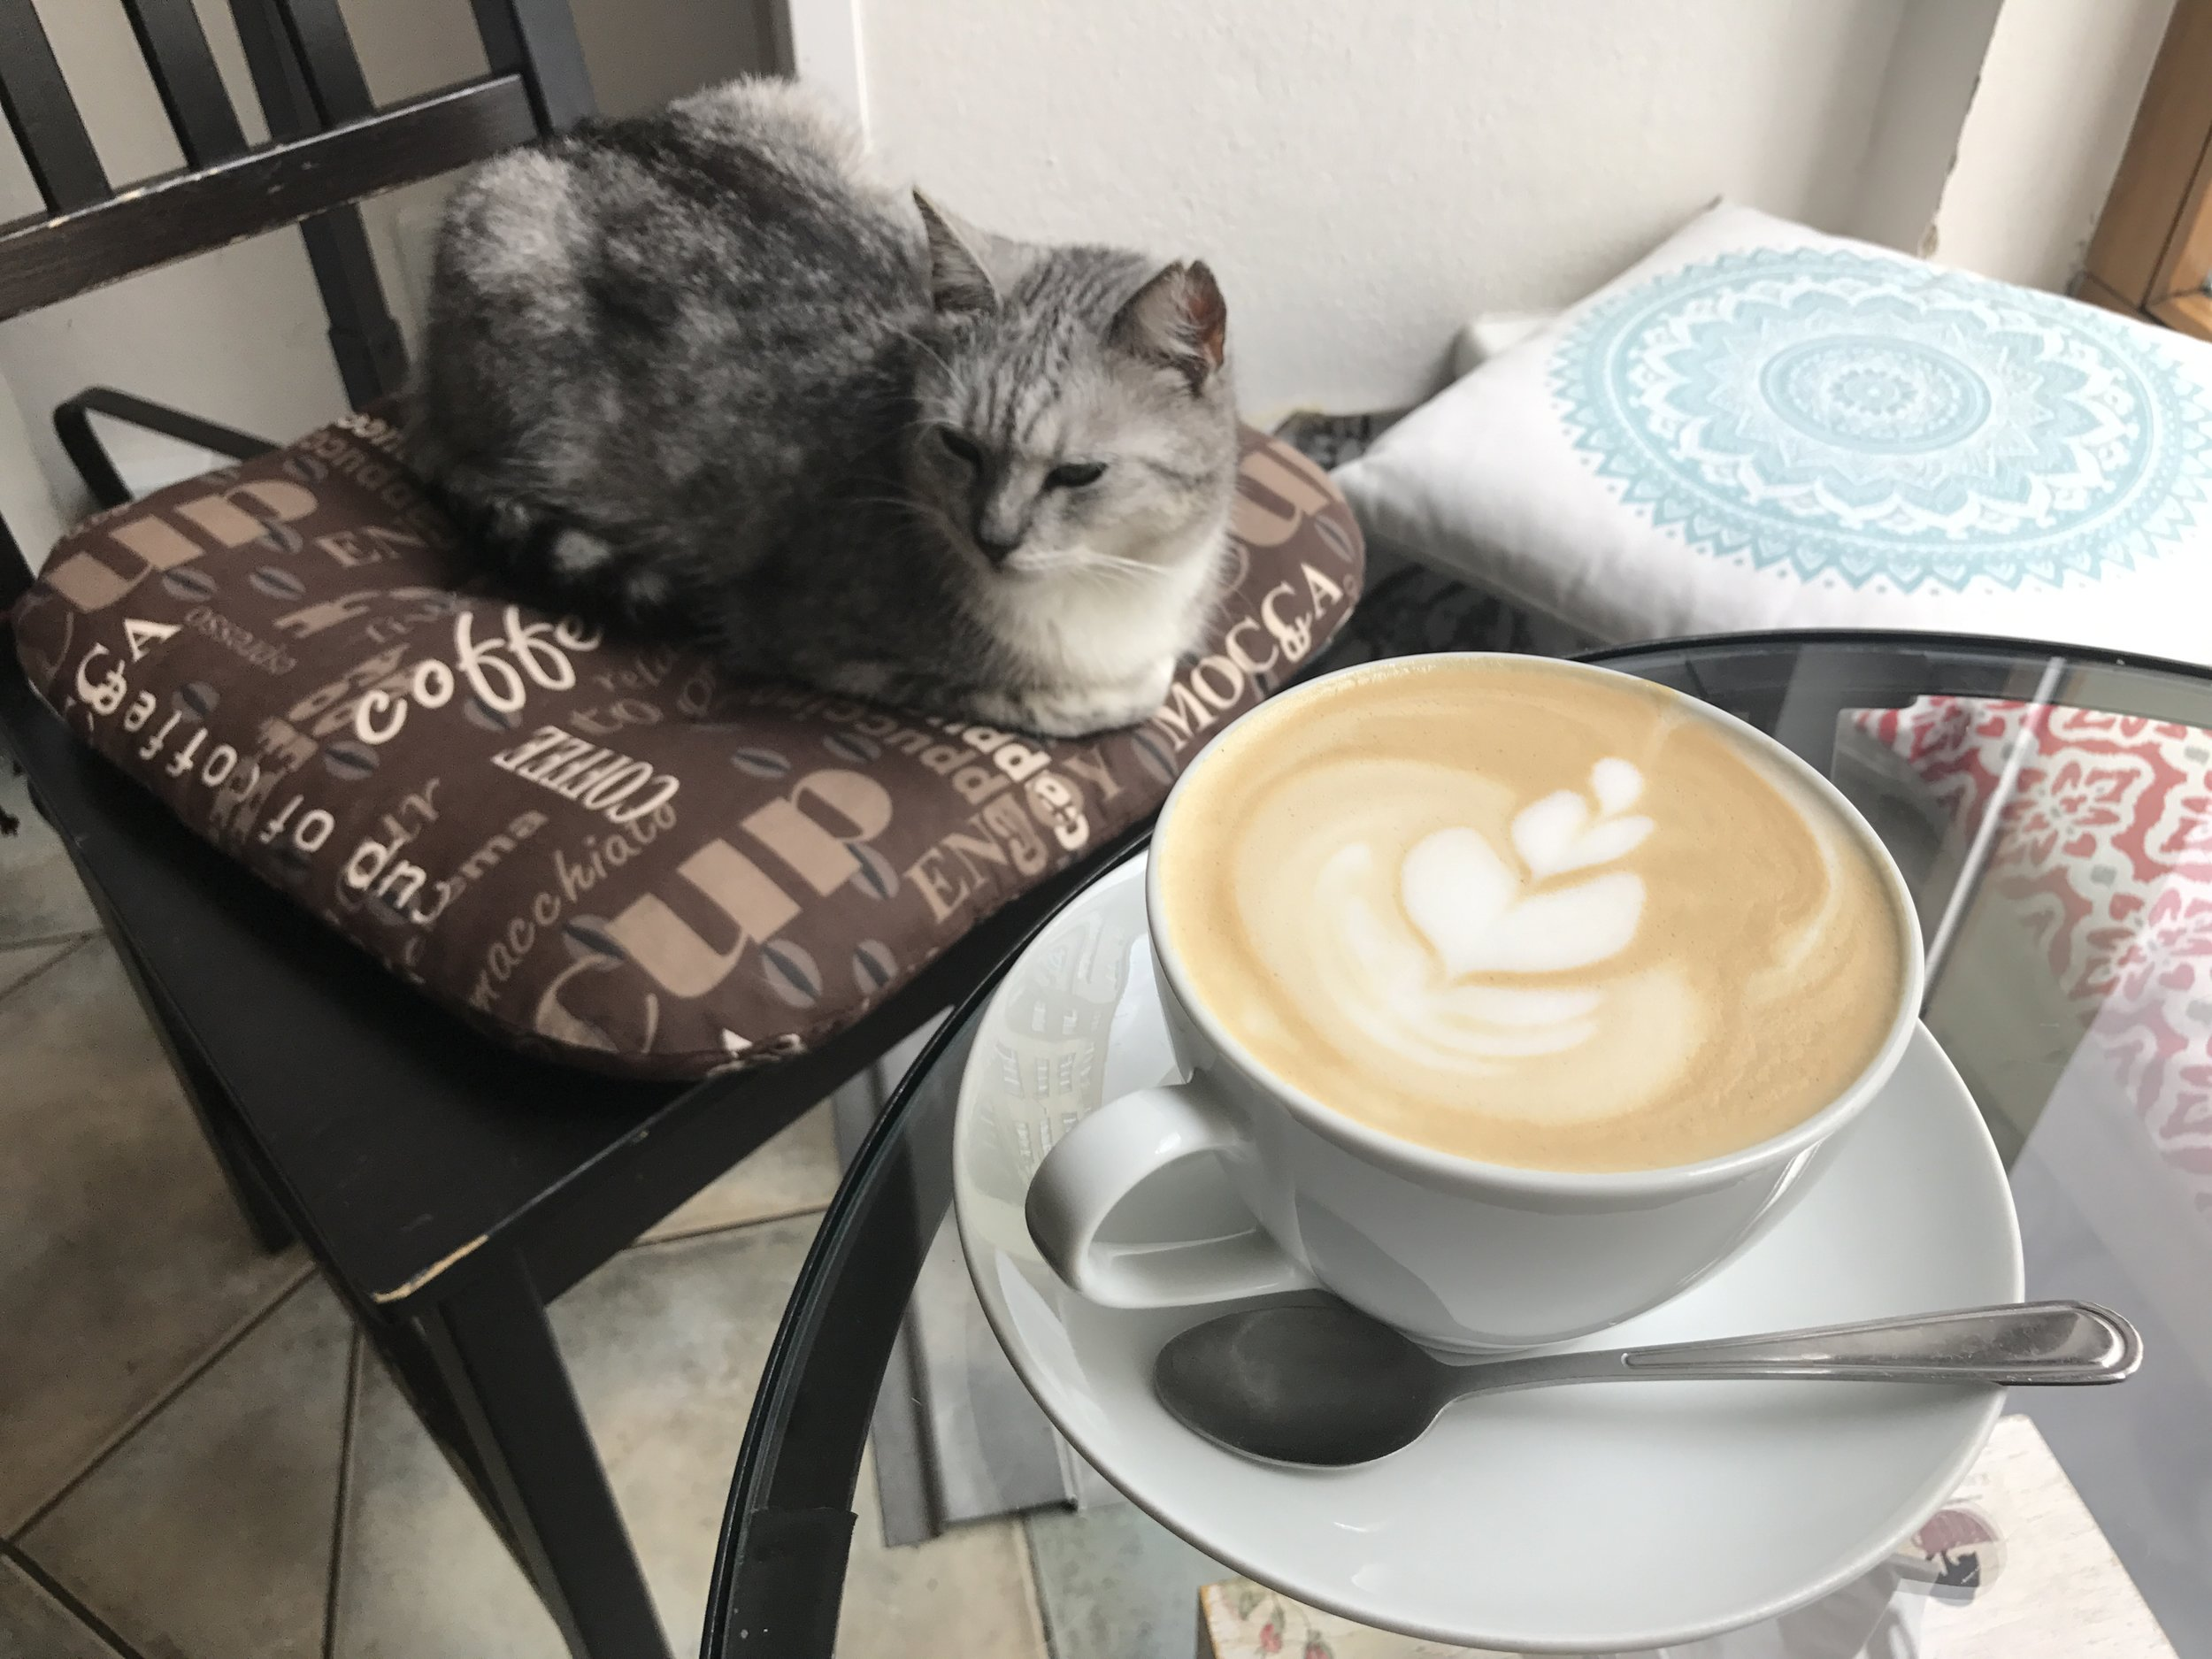 Delicious drinks (like this latte) as well as pastries and food are available